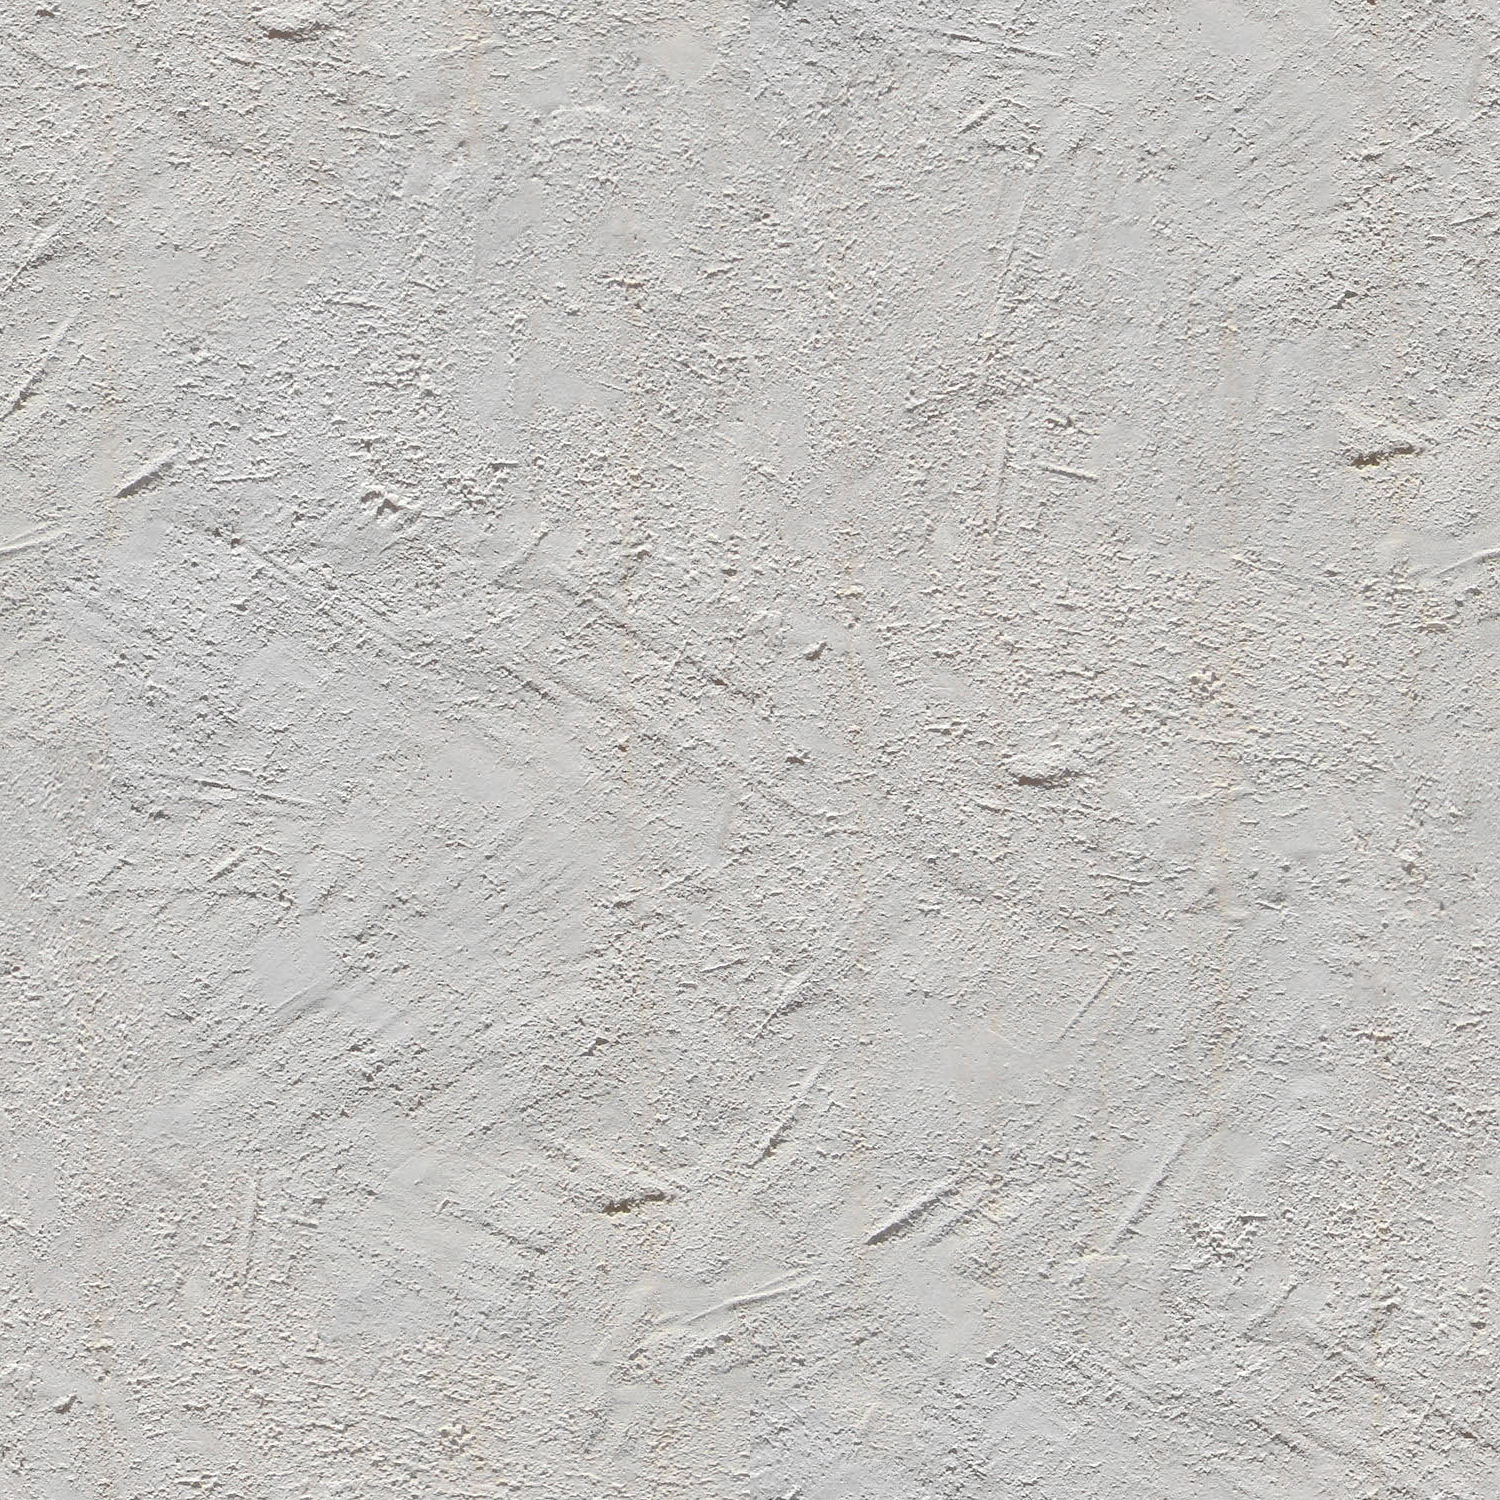 High Resolution Seamless Textures: Tileable Stucco Wall Texture #12